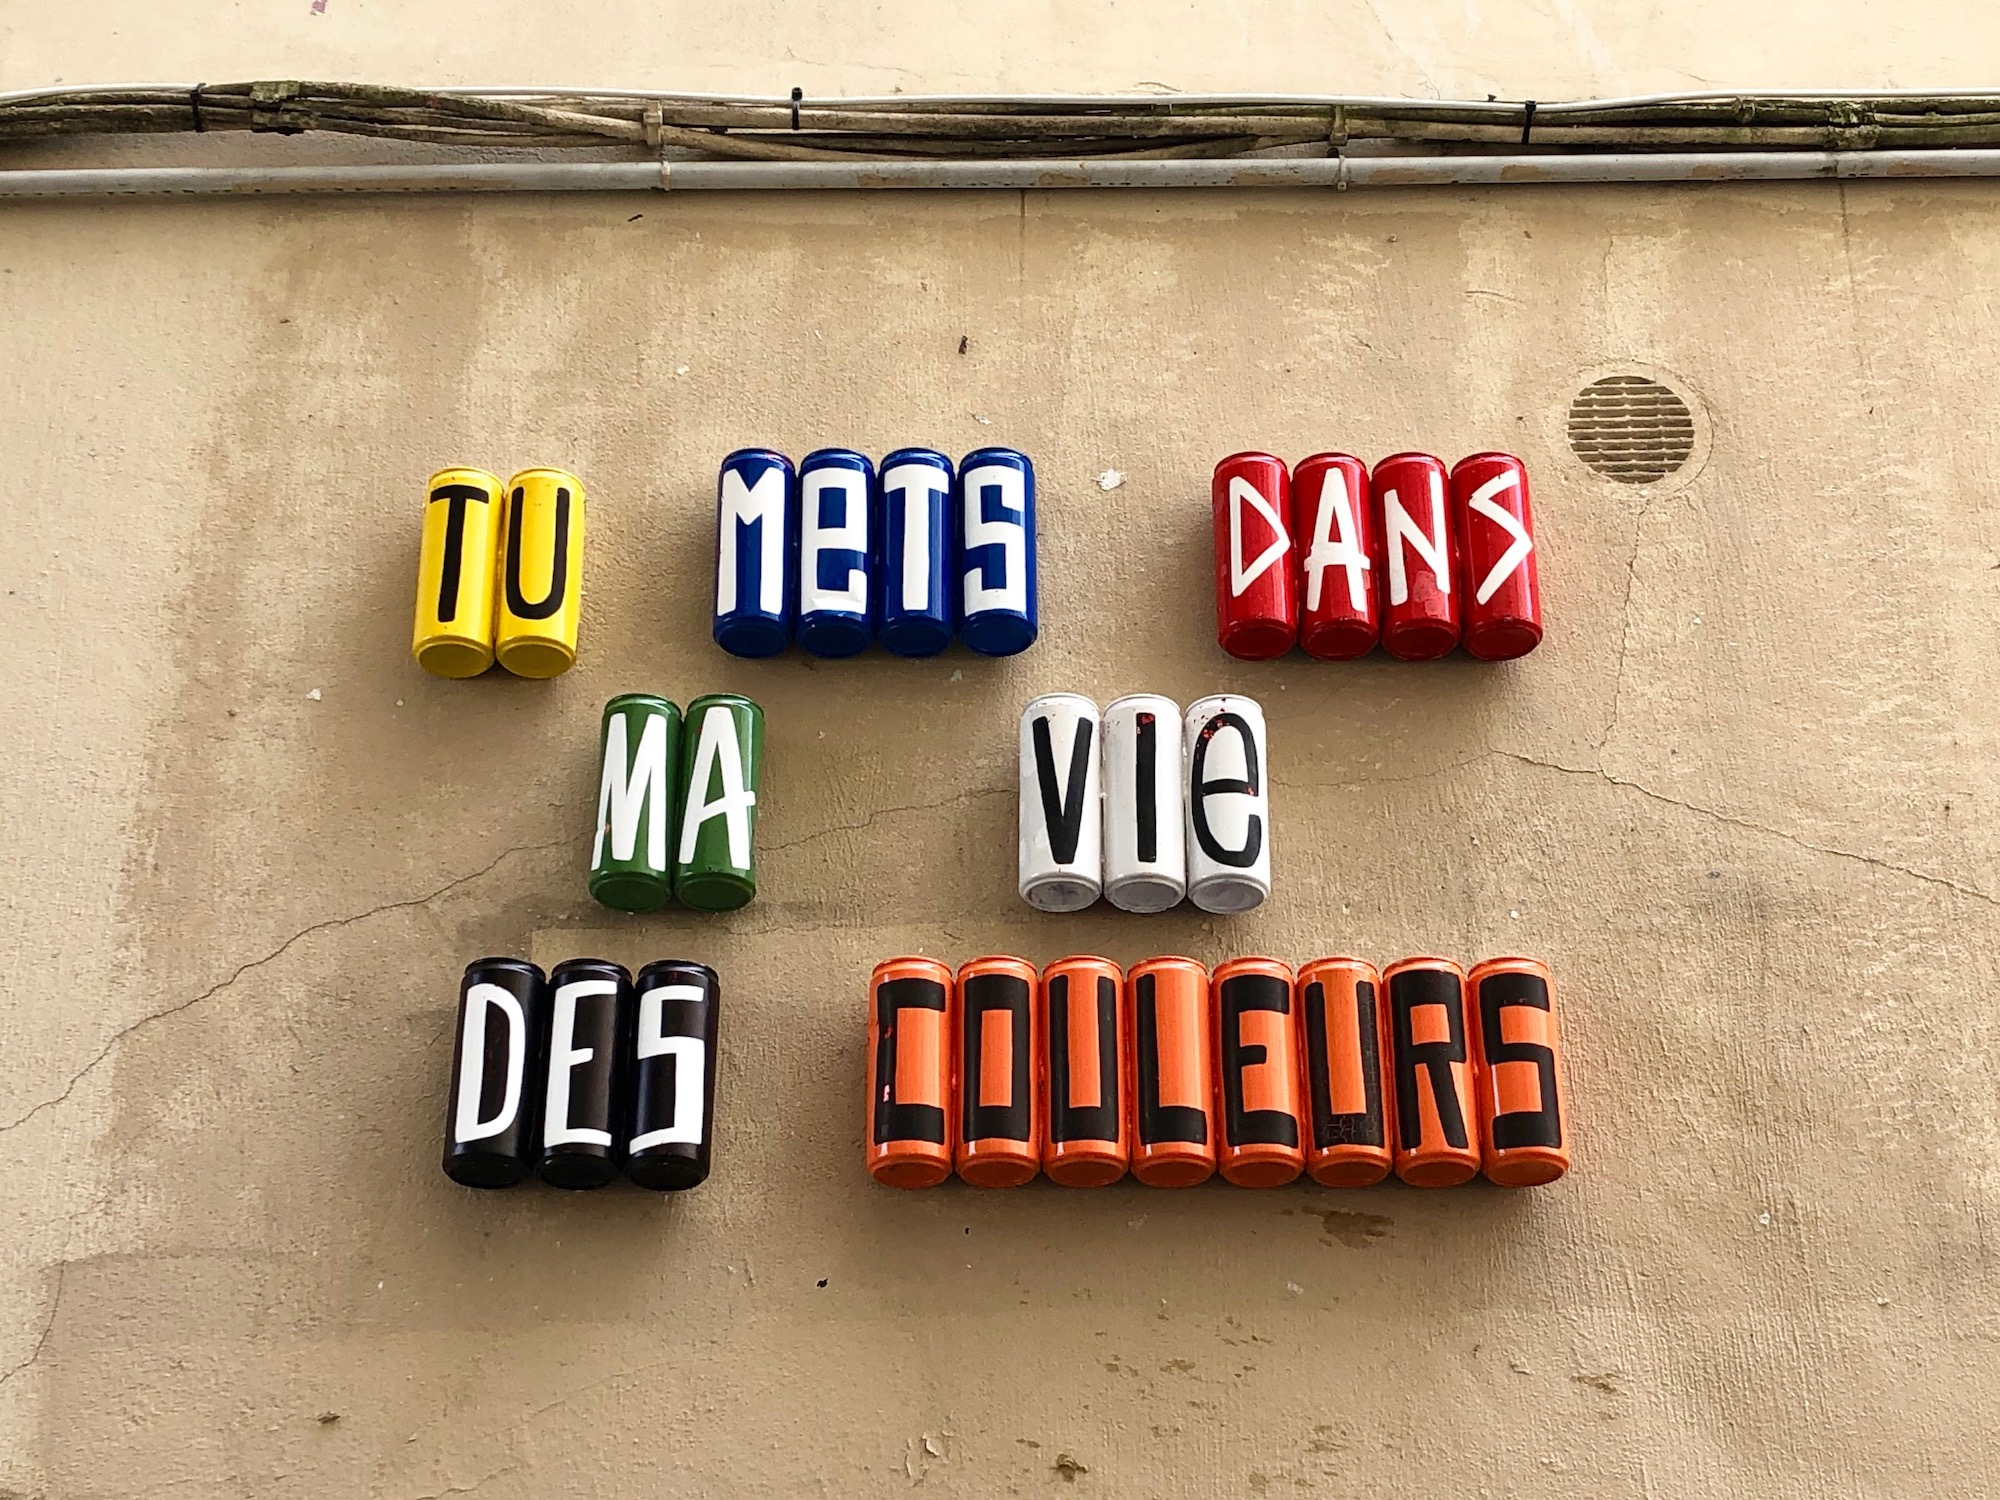 How learning French in Paris can help you to decipher some of the street art like this piece which reads 'You add color to my life' in French.